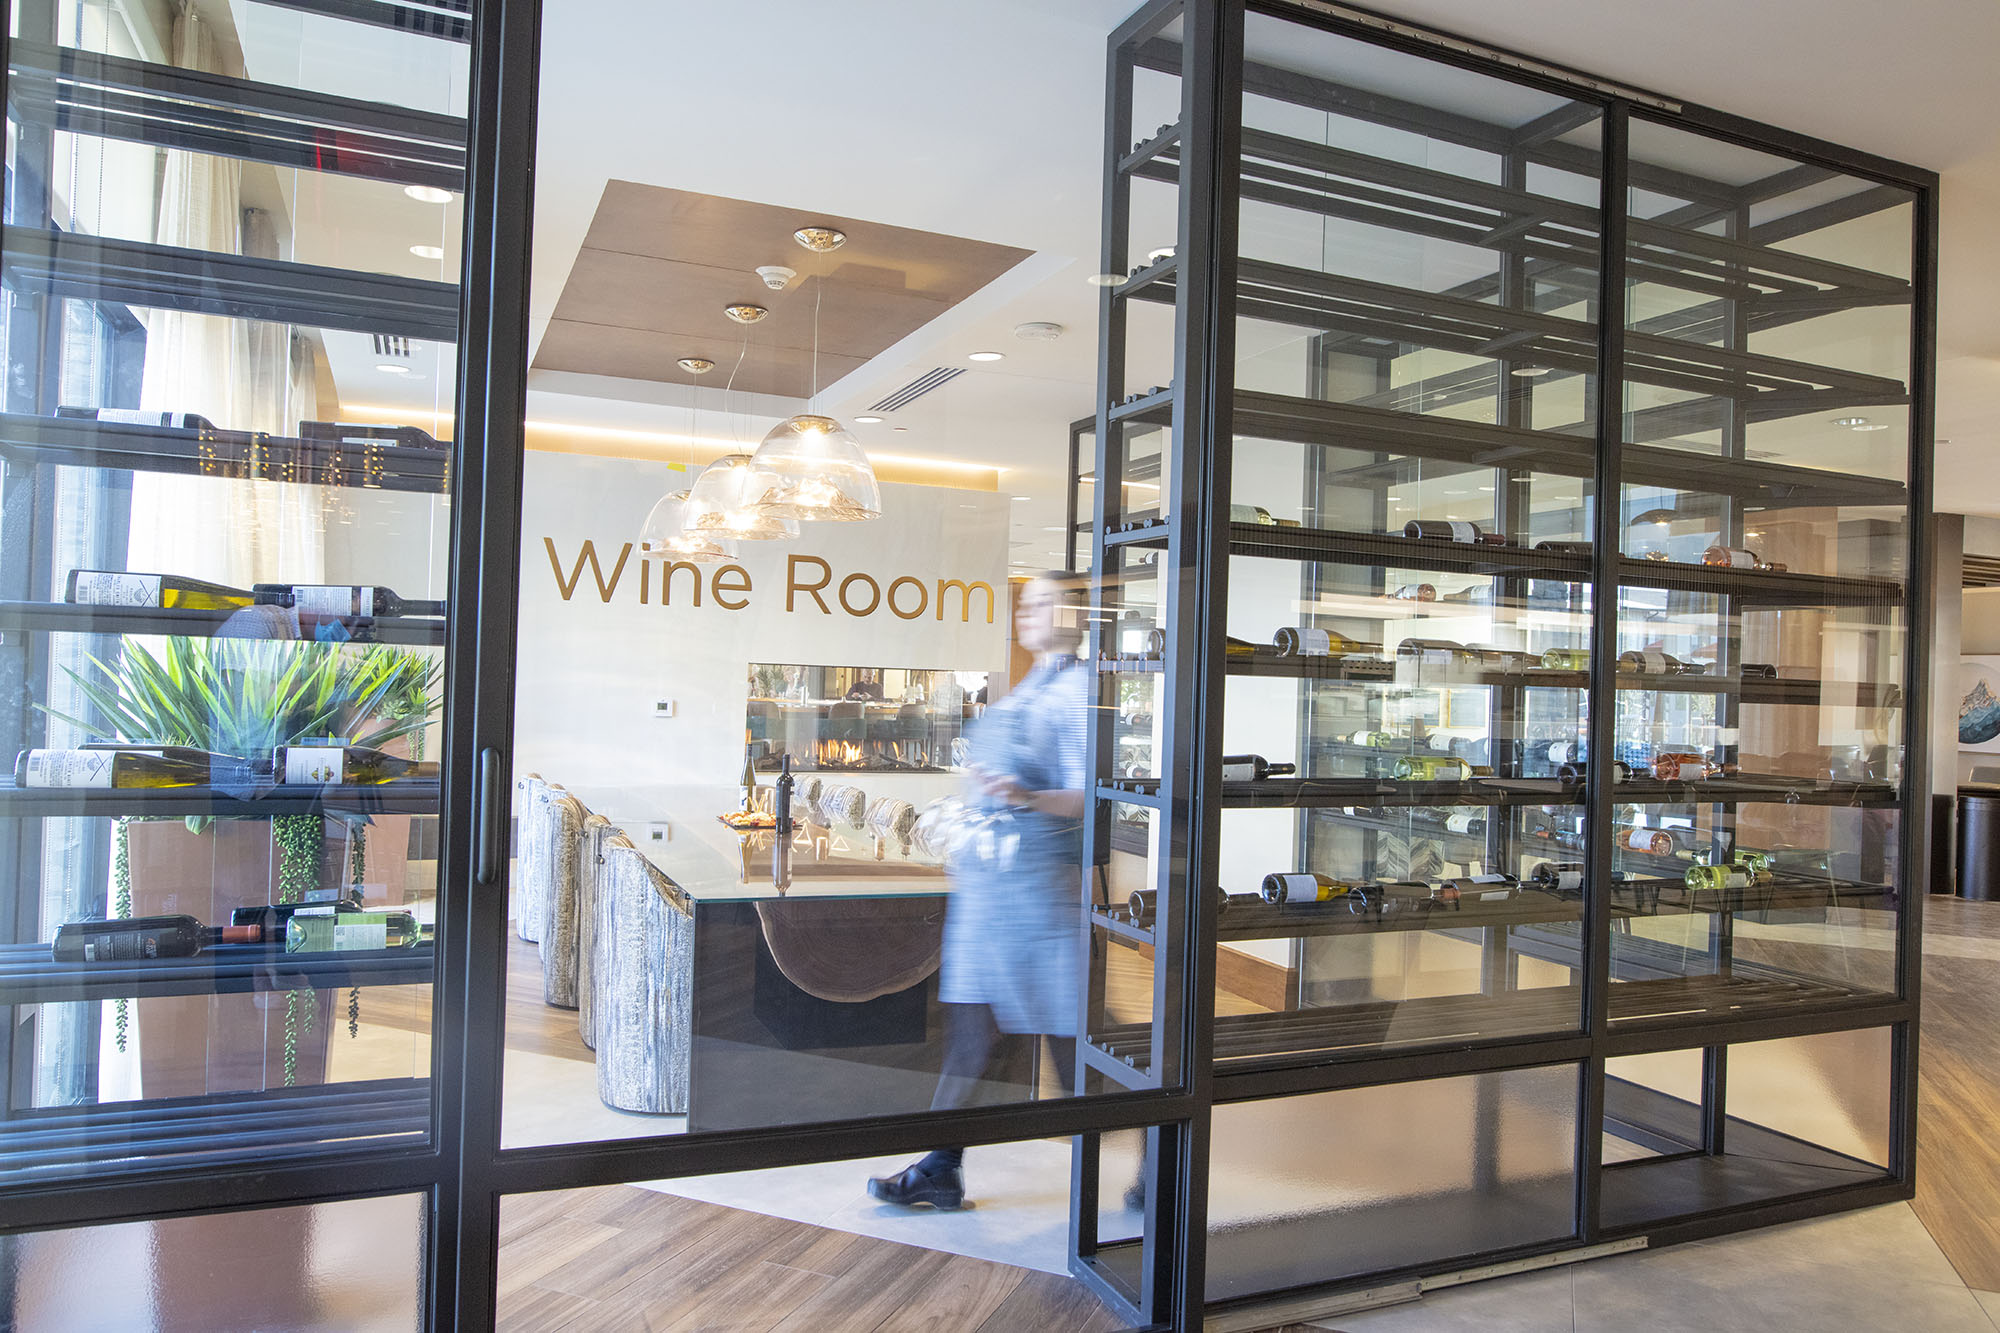 a glimpse of the Wine Room